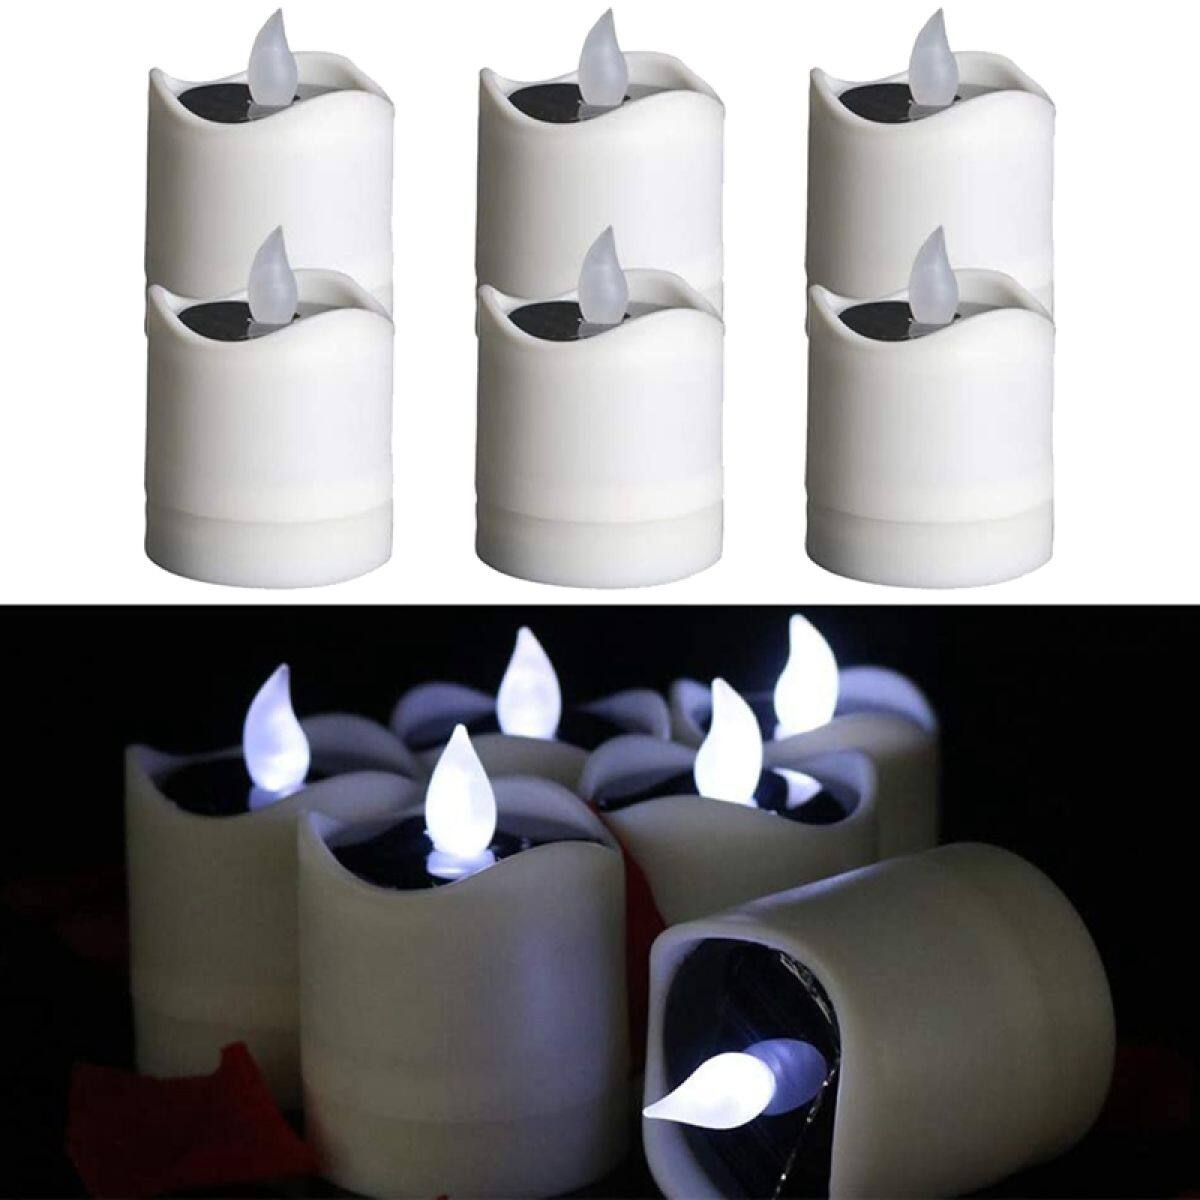 6 Pcs Solar Led Flameless Candles Light Waterproof For Wedding Christmas Halloween Party Decor Flicker Cool White Light Lazada